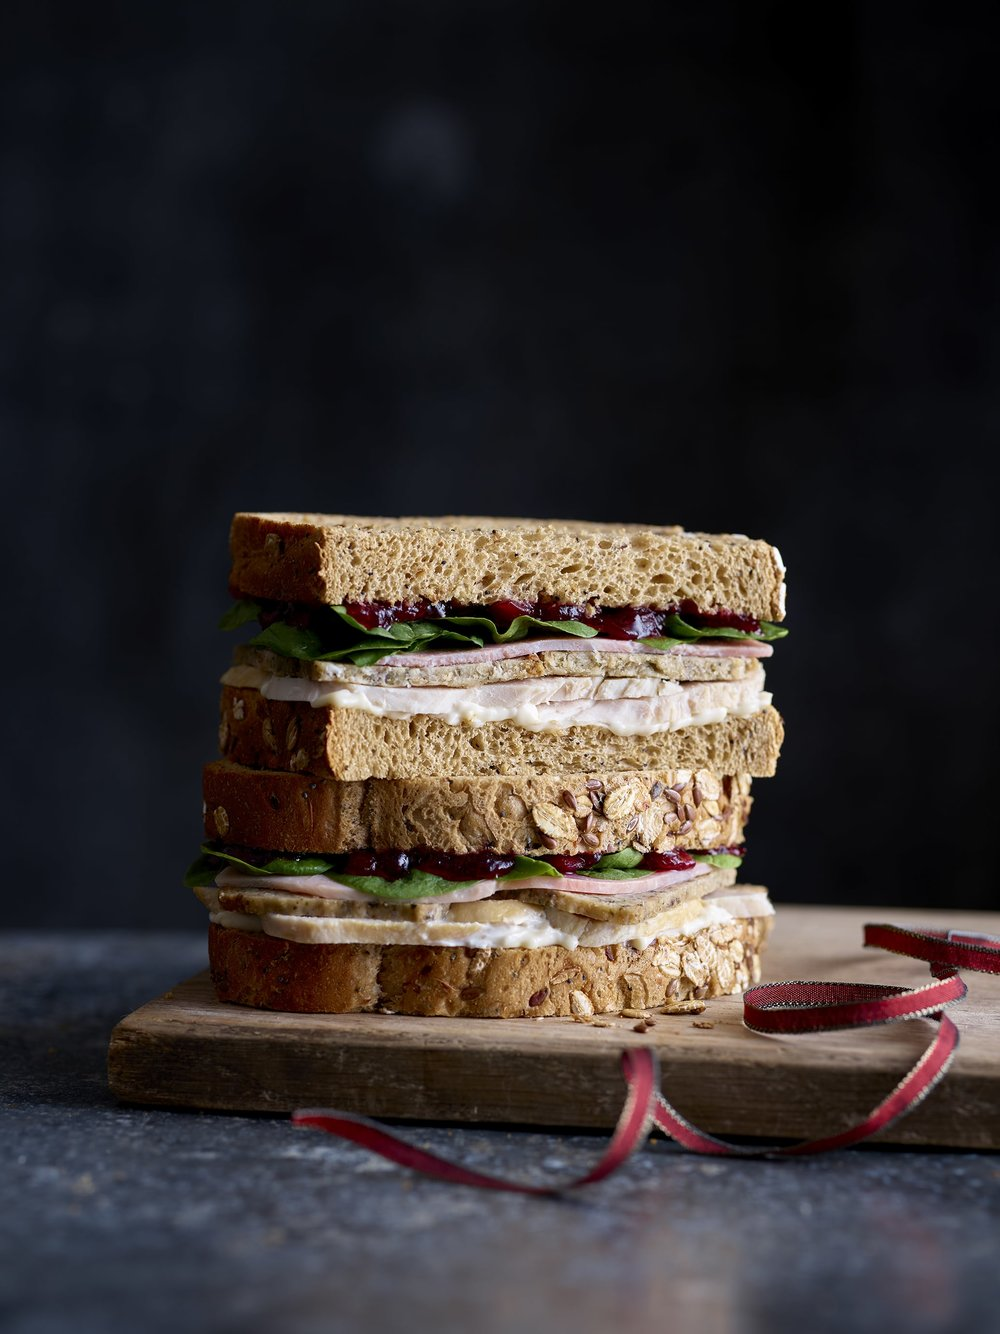 CHRISTMAS DINNER ON SEEDED BREAD - EAT have secured another spot with their festive full works bloomer! This sandwich includes butter basted turkey, sage and onion stuffing, some savoury smokiness, cranberry sauce and mayo for some extra moisture sandwiched between lovely seeded bread. This has scored highly across The Mirror with a 4, Daily Mail with a 5 and also in iNews with a 4.1 overall as the turkey scored 4 out of 5, the extras scored 4 out of 5 and bread got a 5 out of 5.